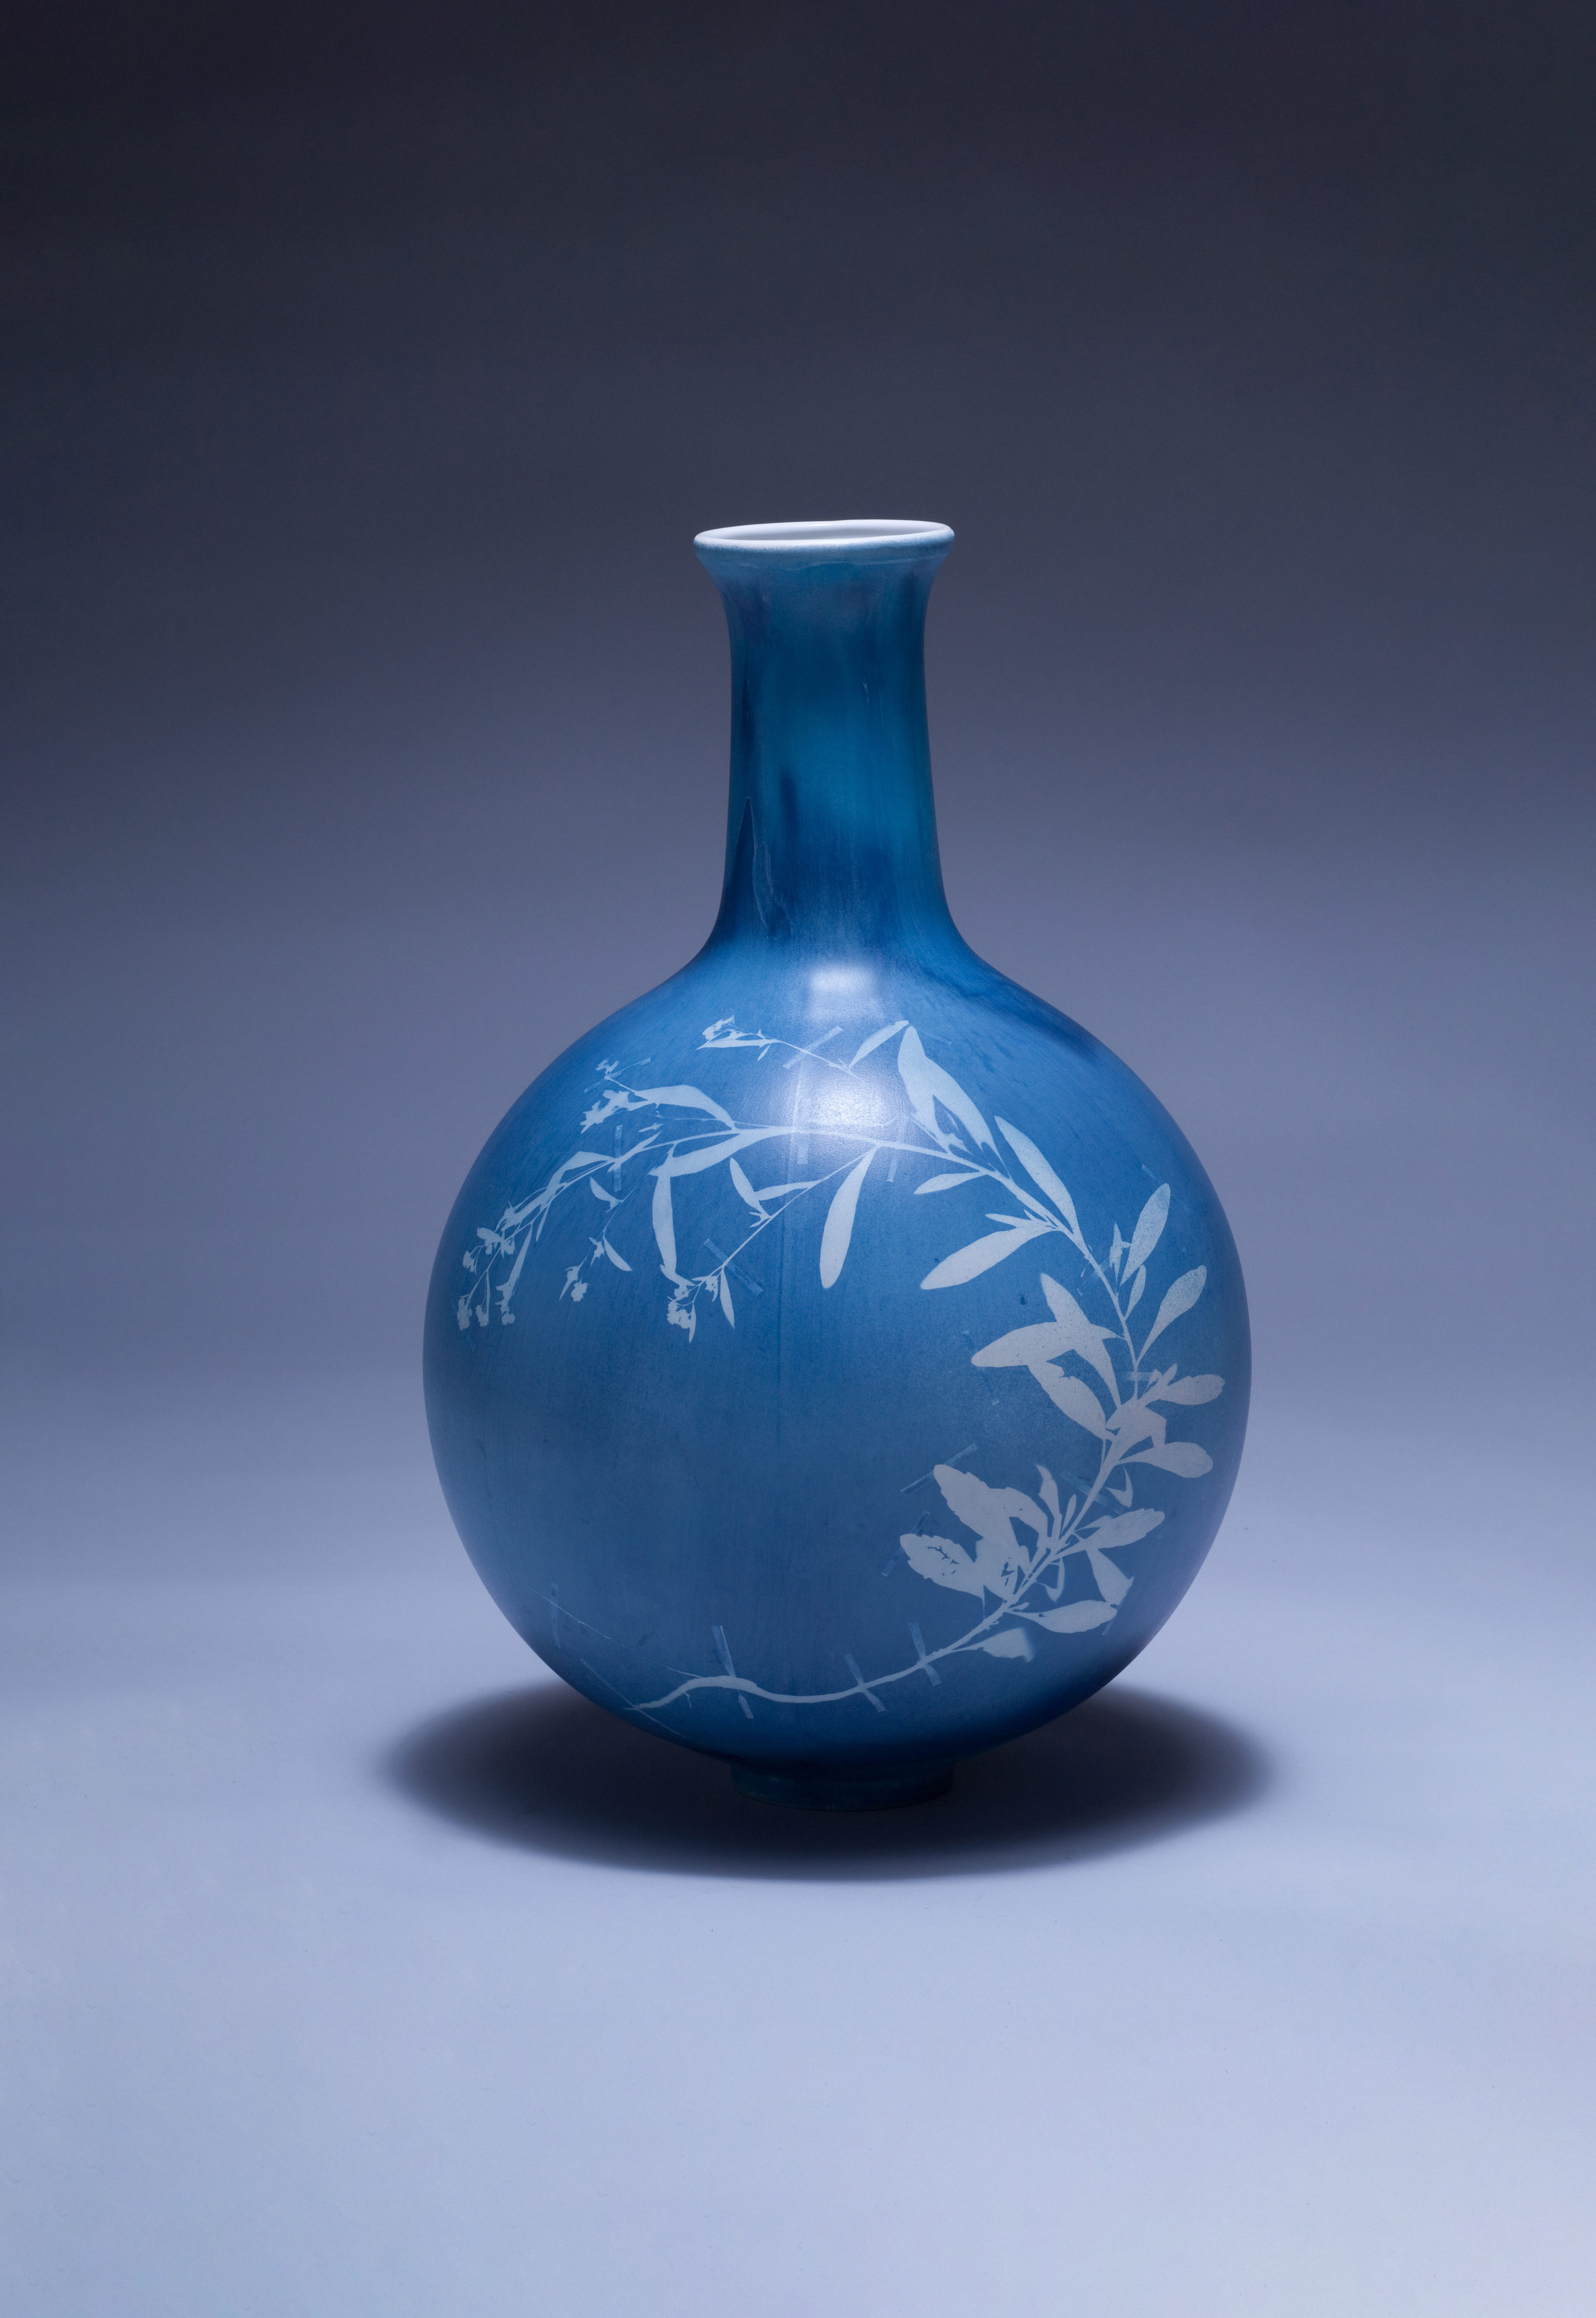 Blueware vases is a collection of vases with cyanotype photograms of foraged weeds. The weeds are pressed in our herbarium before being captured on the vases using an original photographic process.